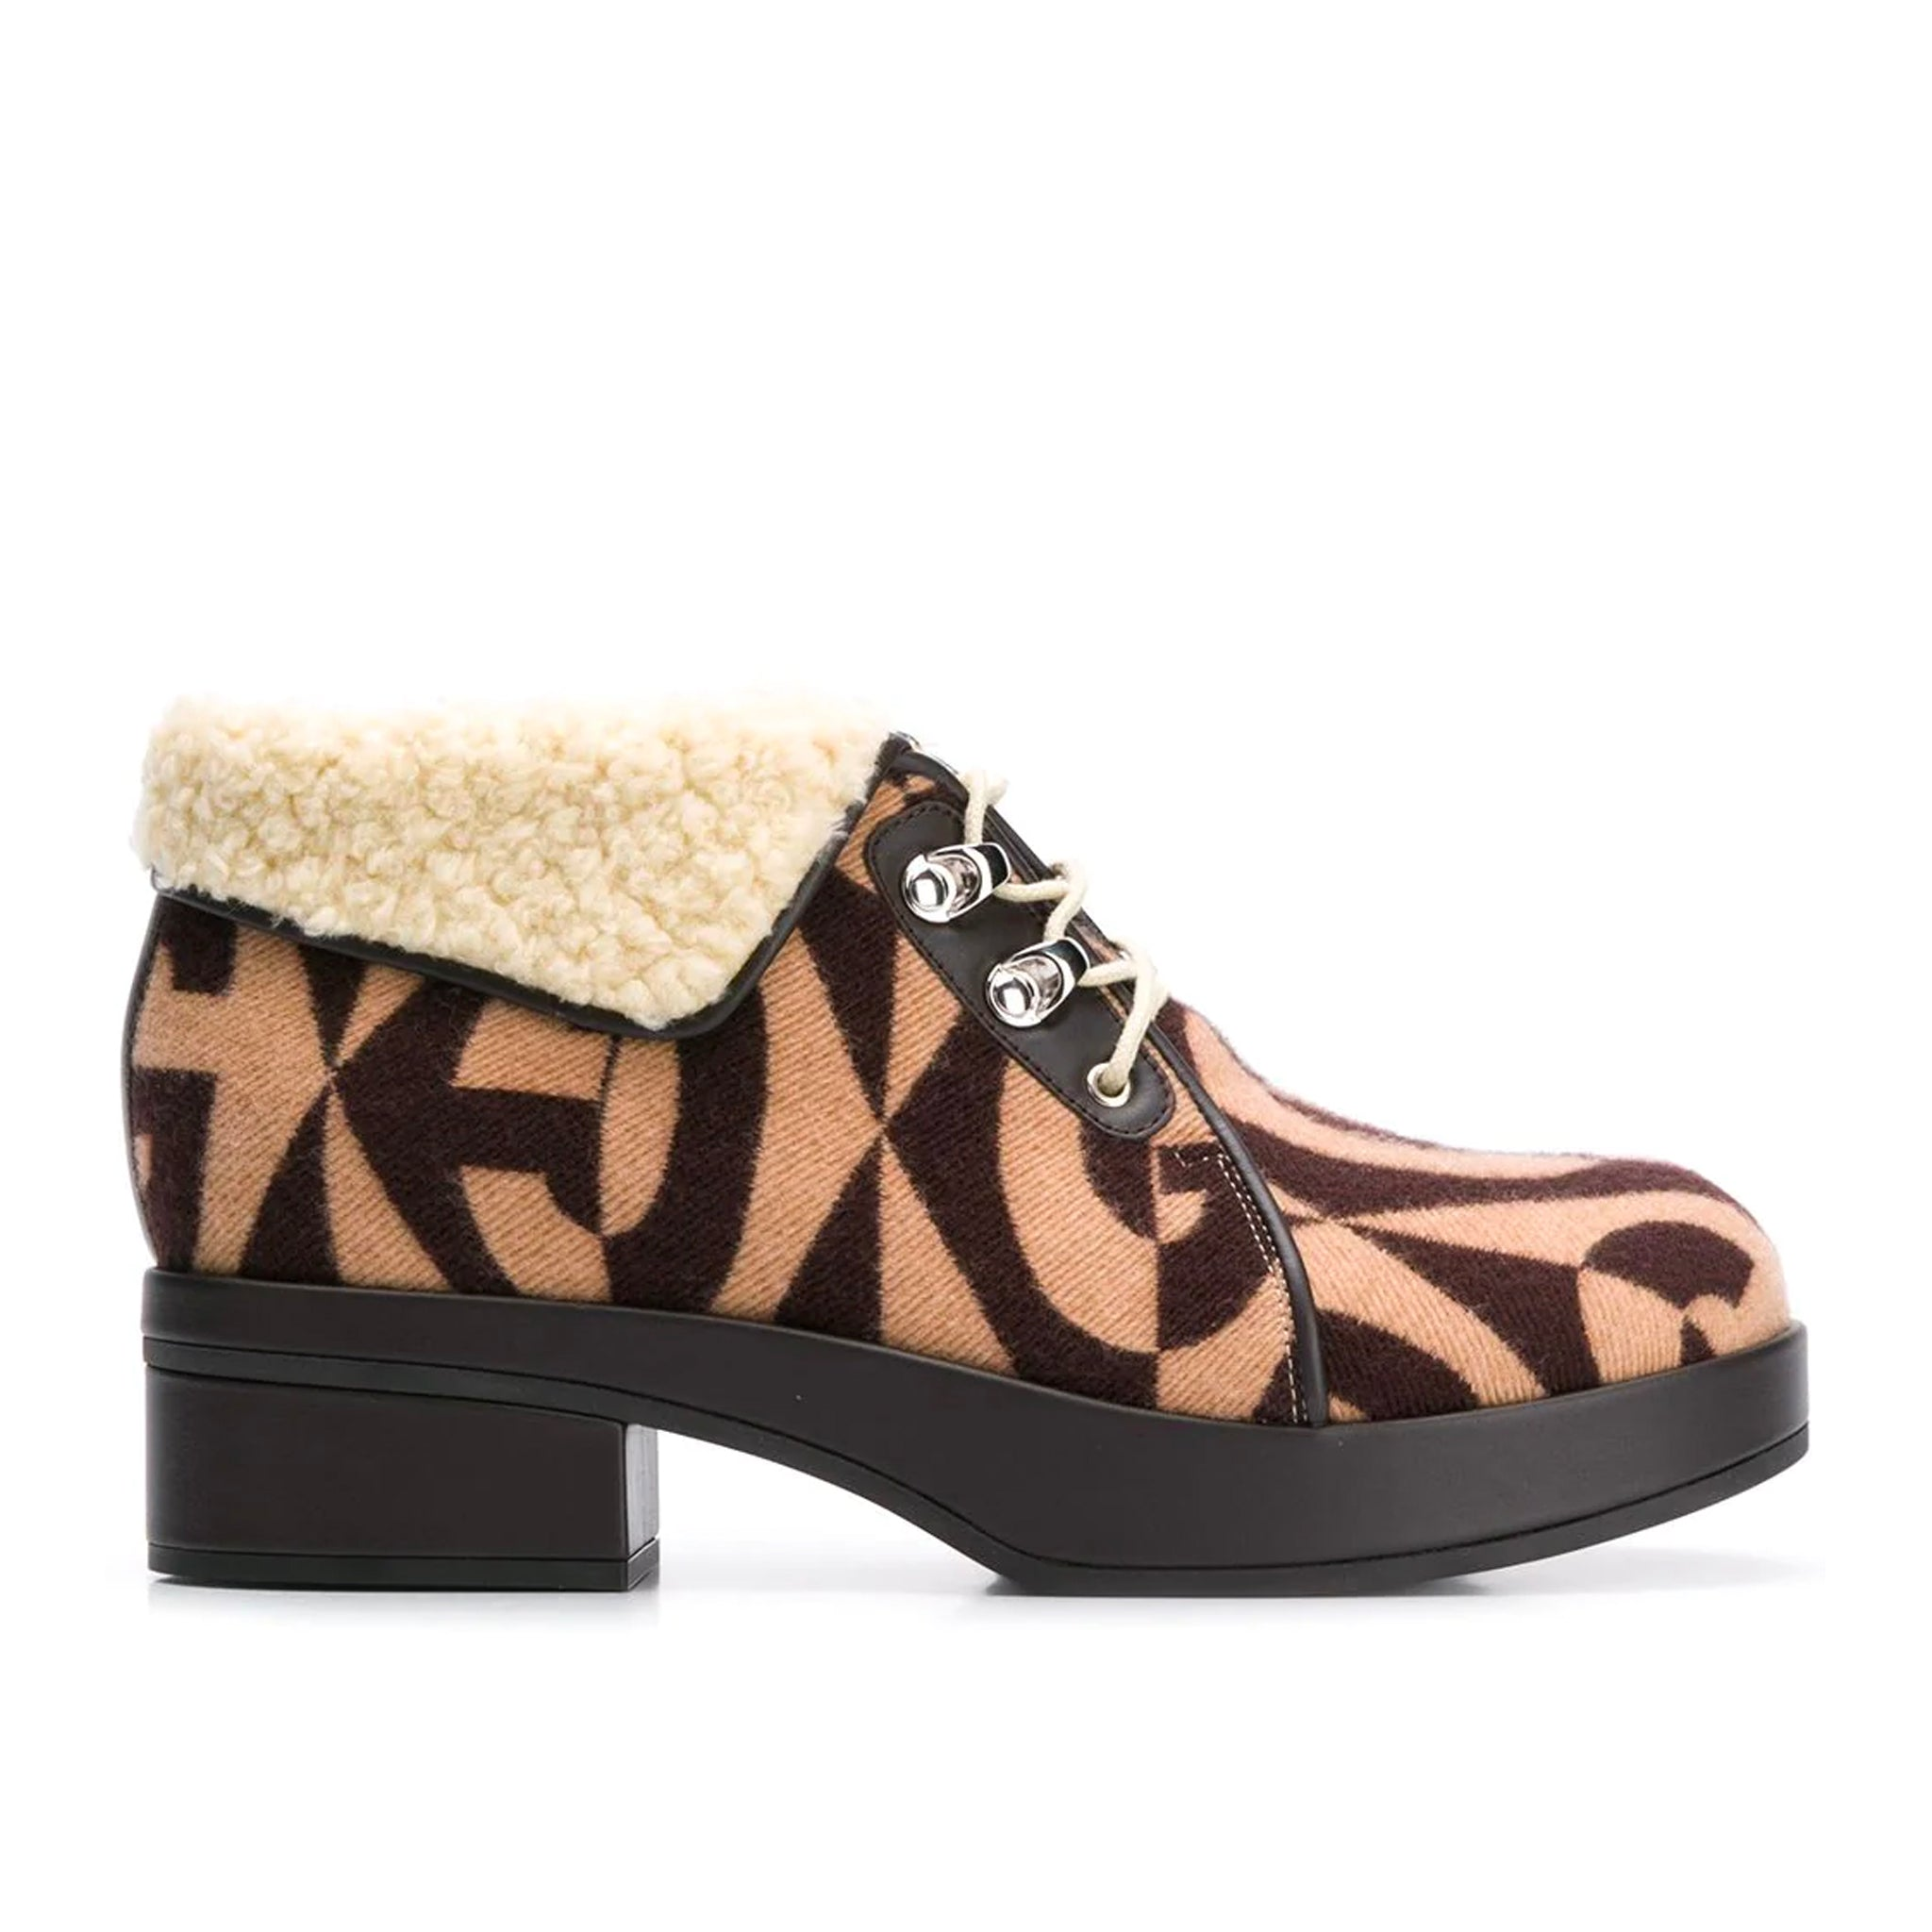 Gucci Monogram Print Ankle Boots